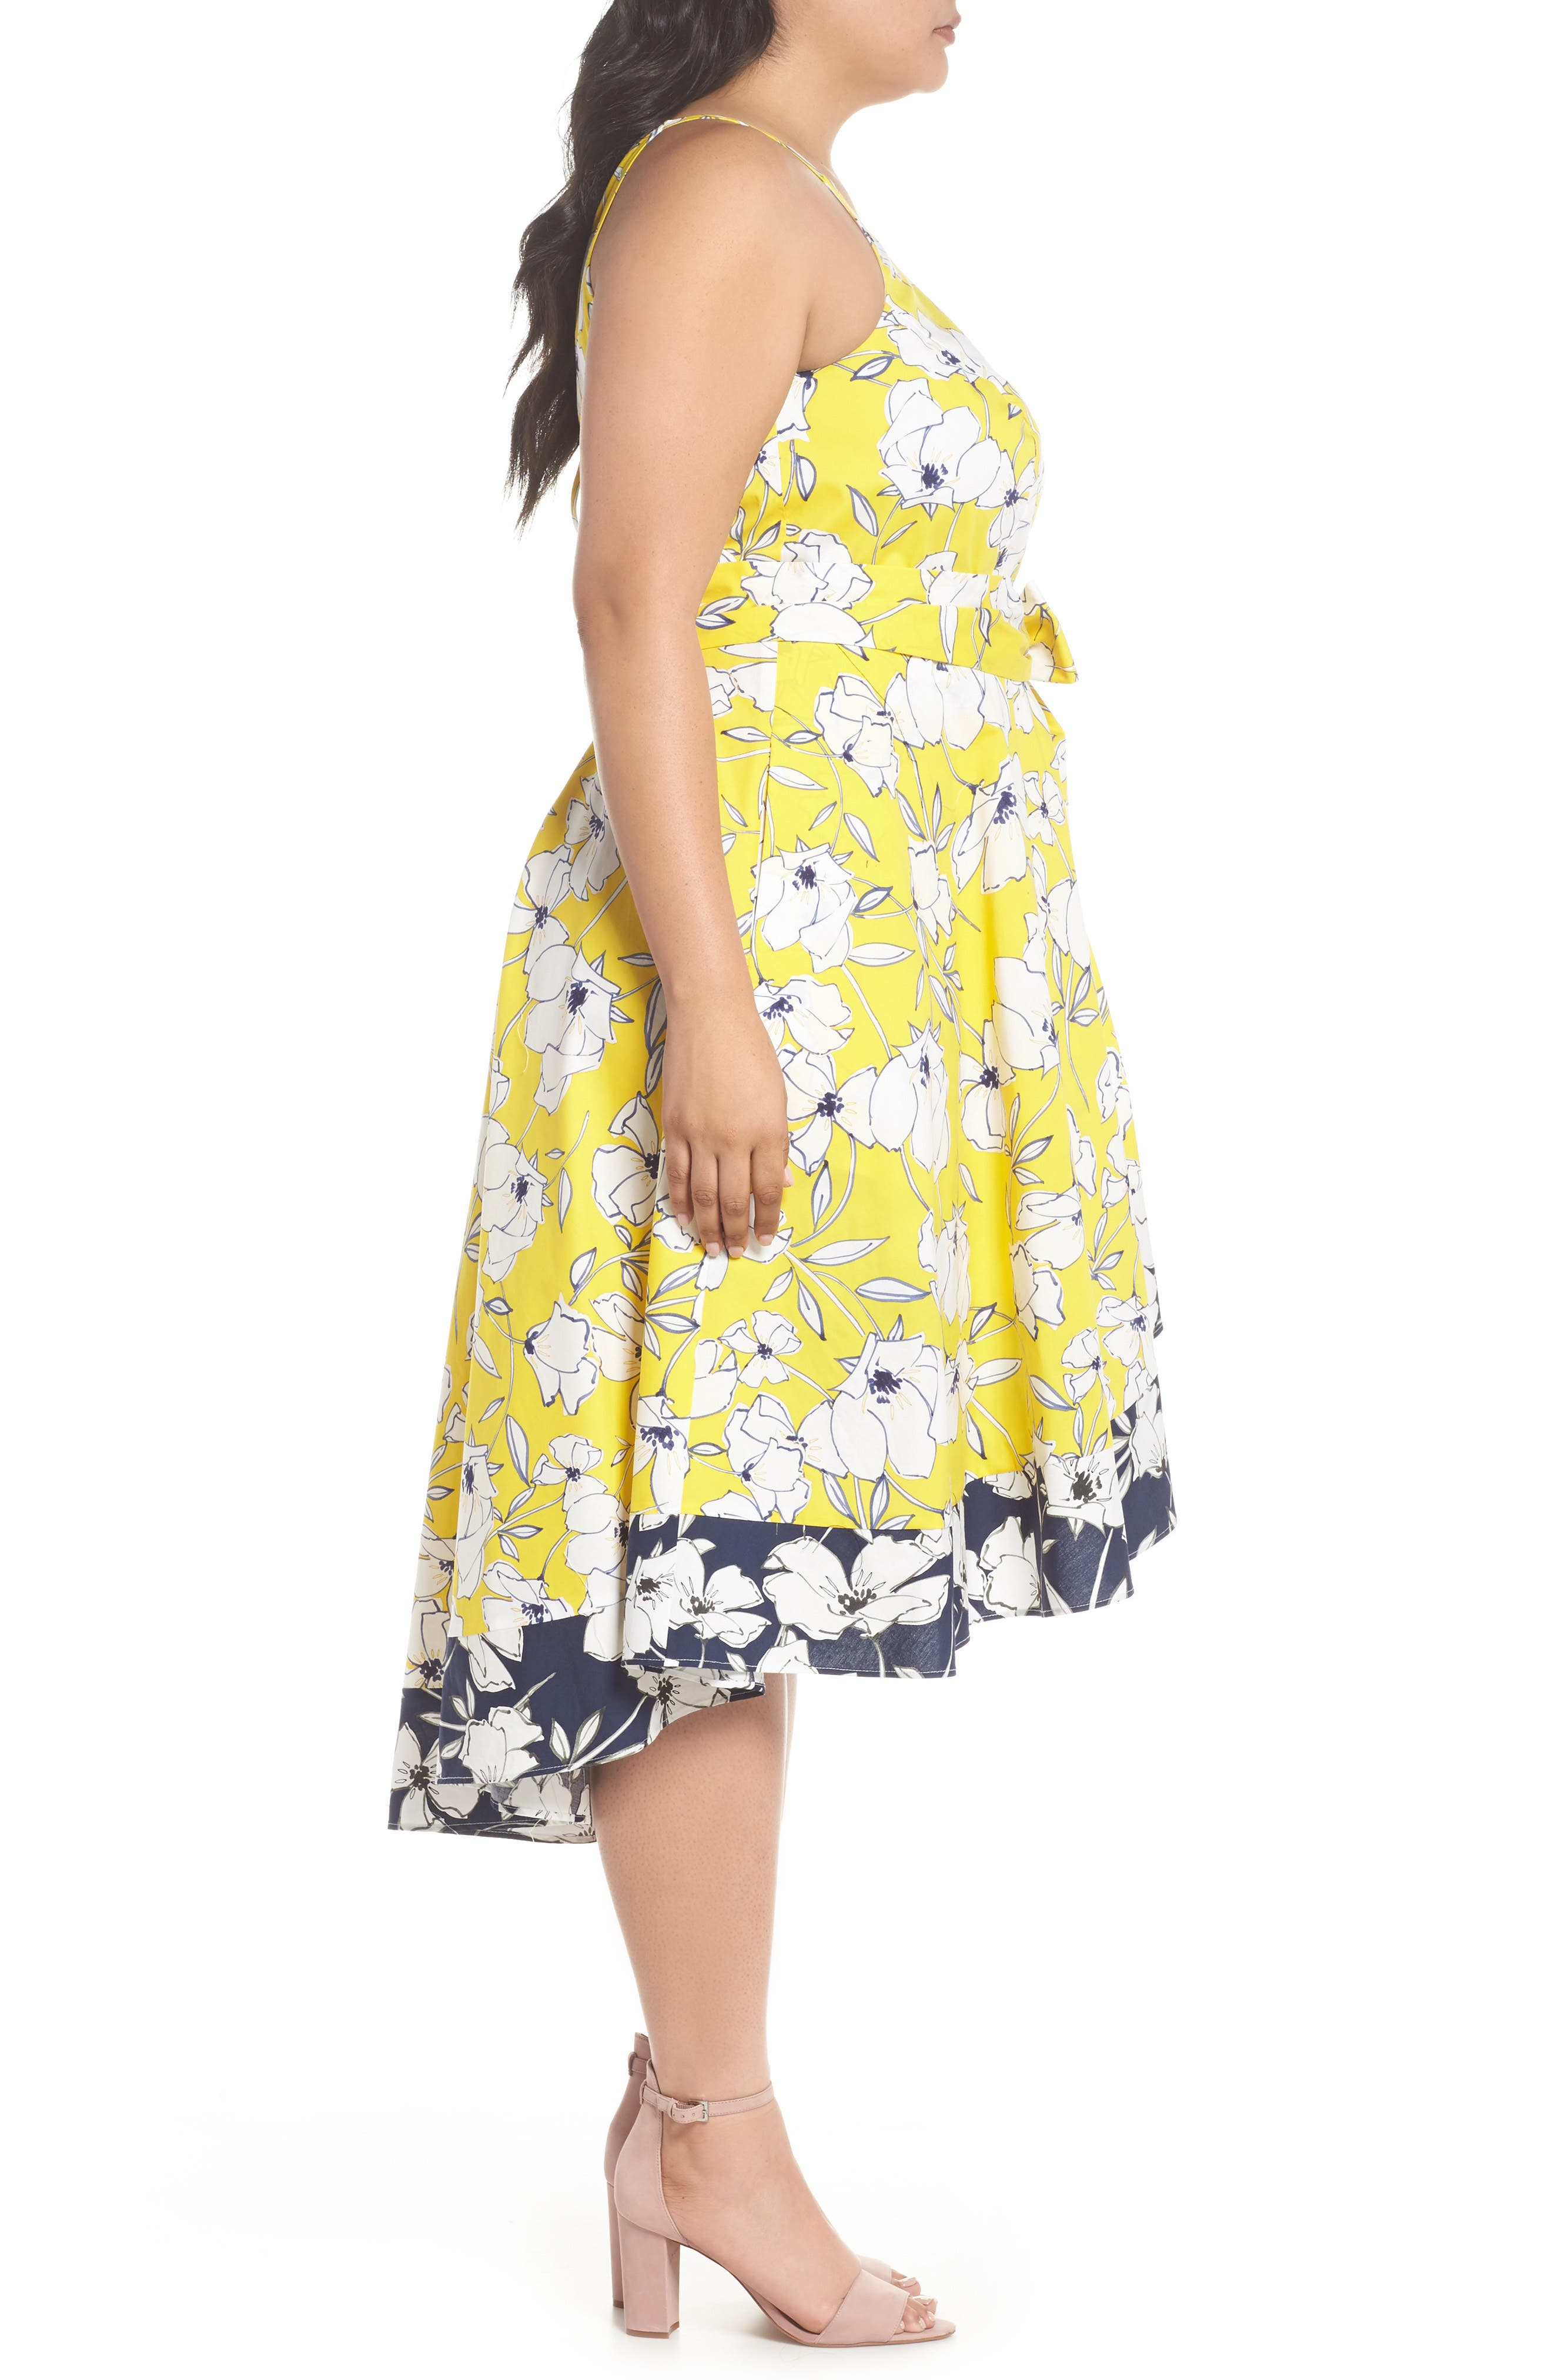 Floral Fit & Flare Dress,                             Alternate thumbnail 4, color,                             Yellow/ Navy/ White